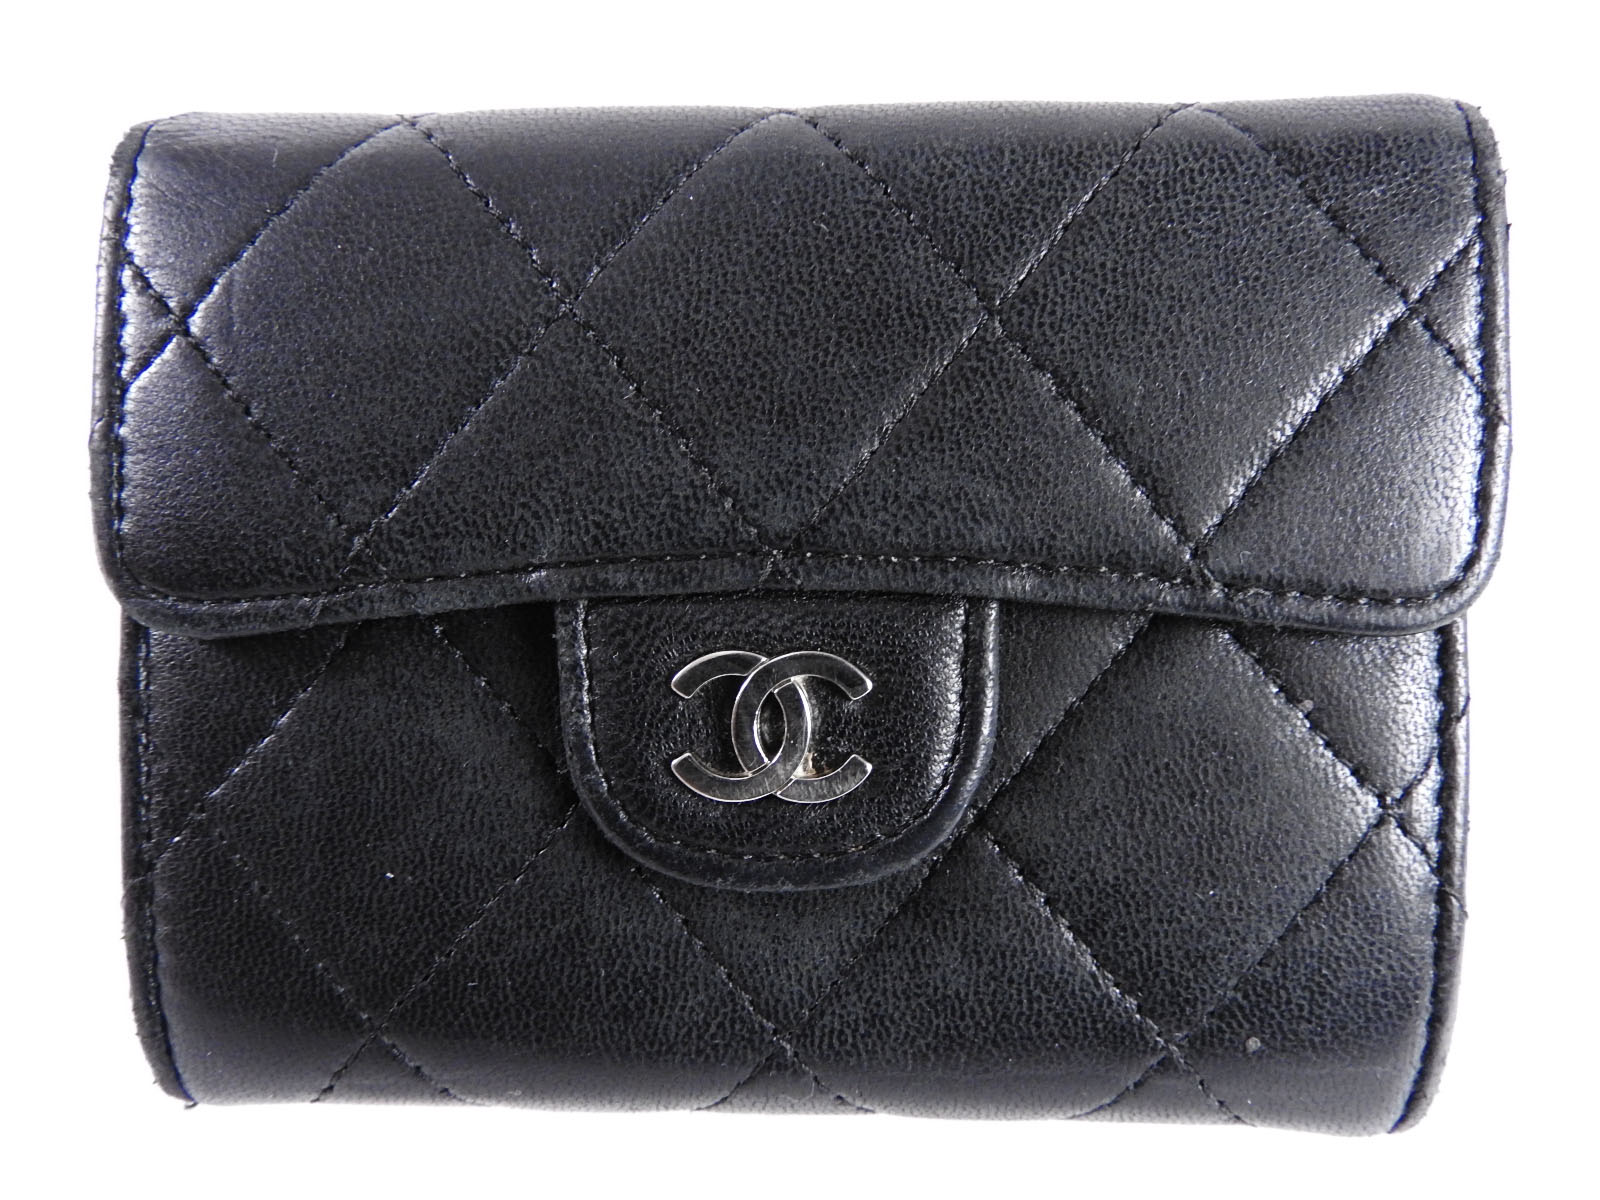 99c4608748fe Chanel Wallet Logo | Stanford Center for Opportunity Policy in Education